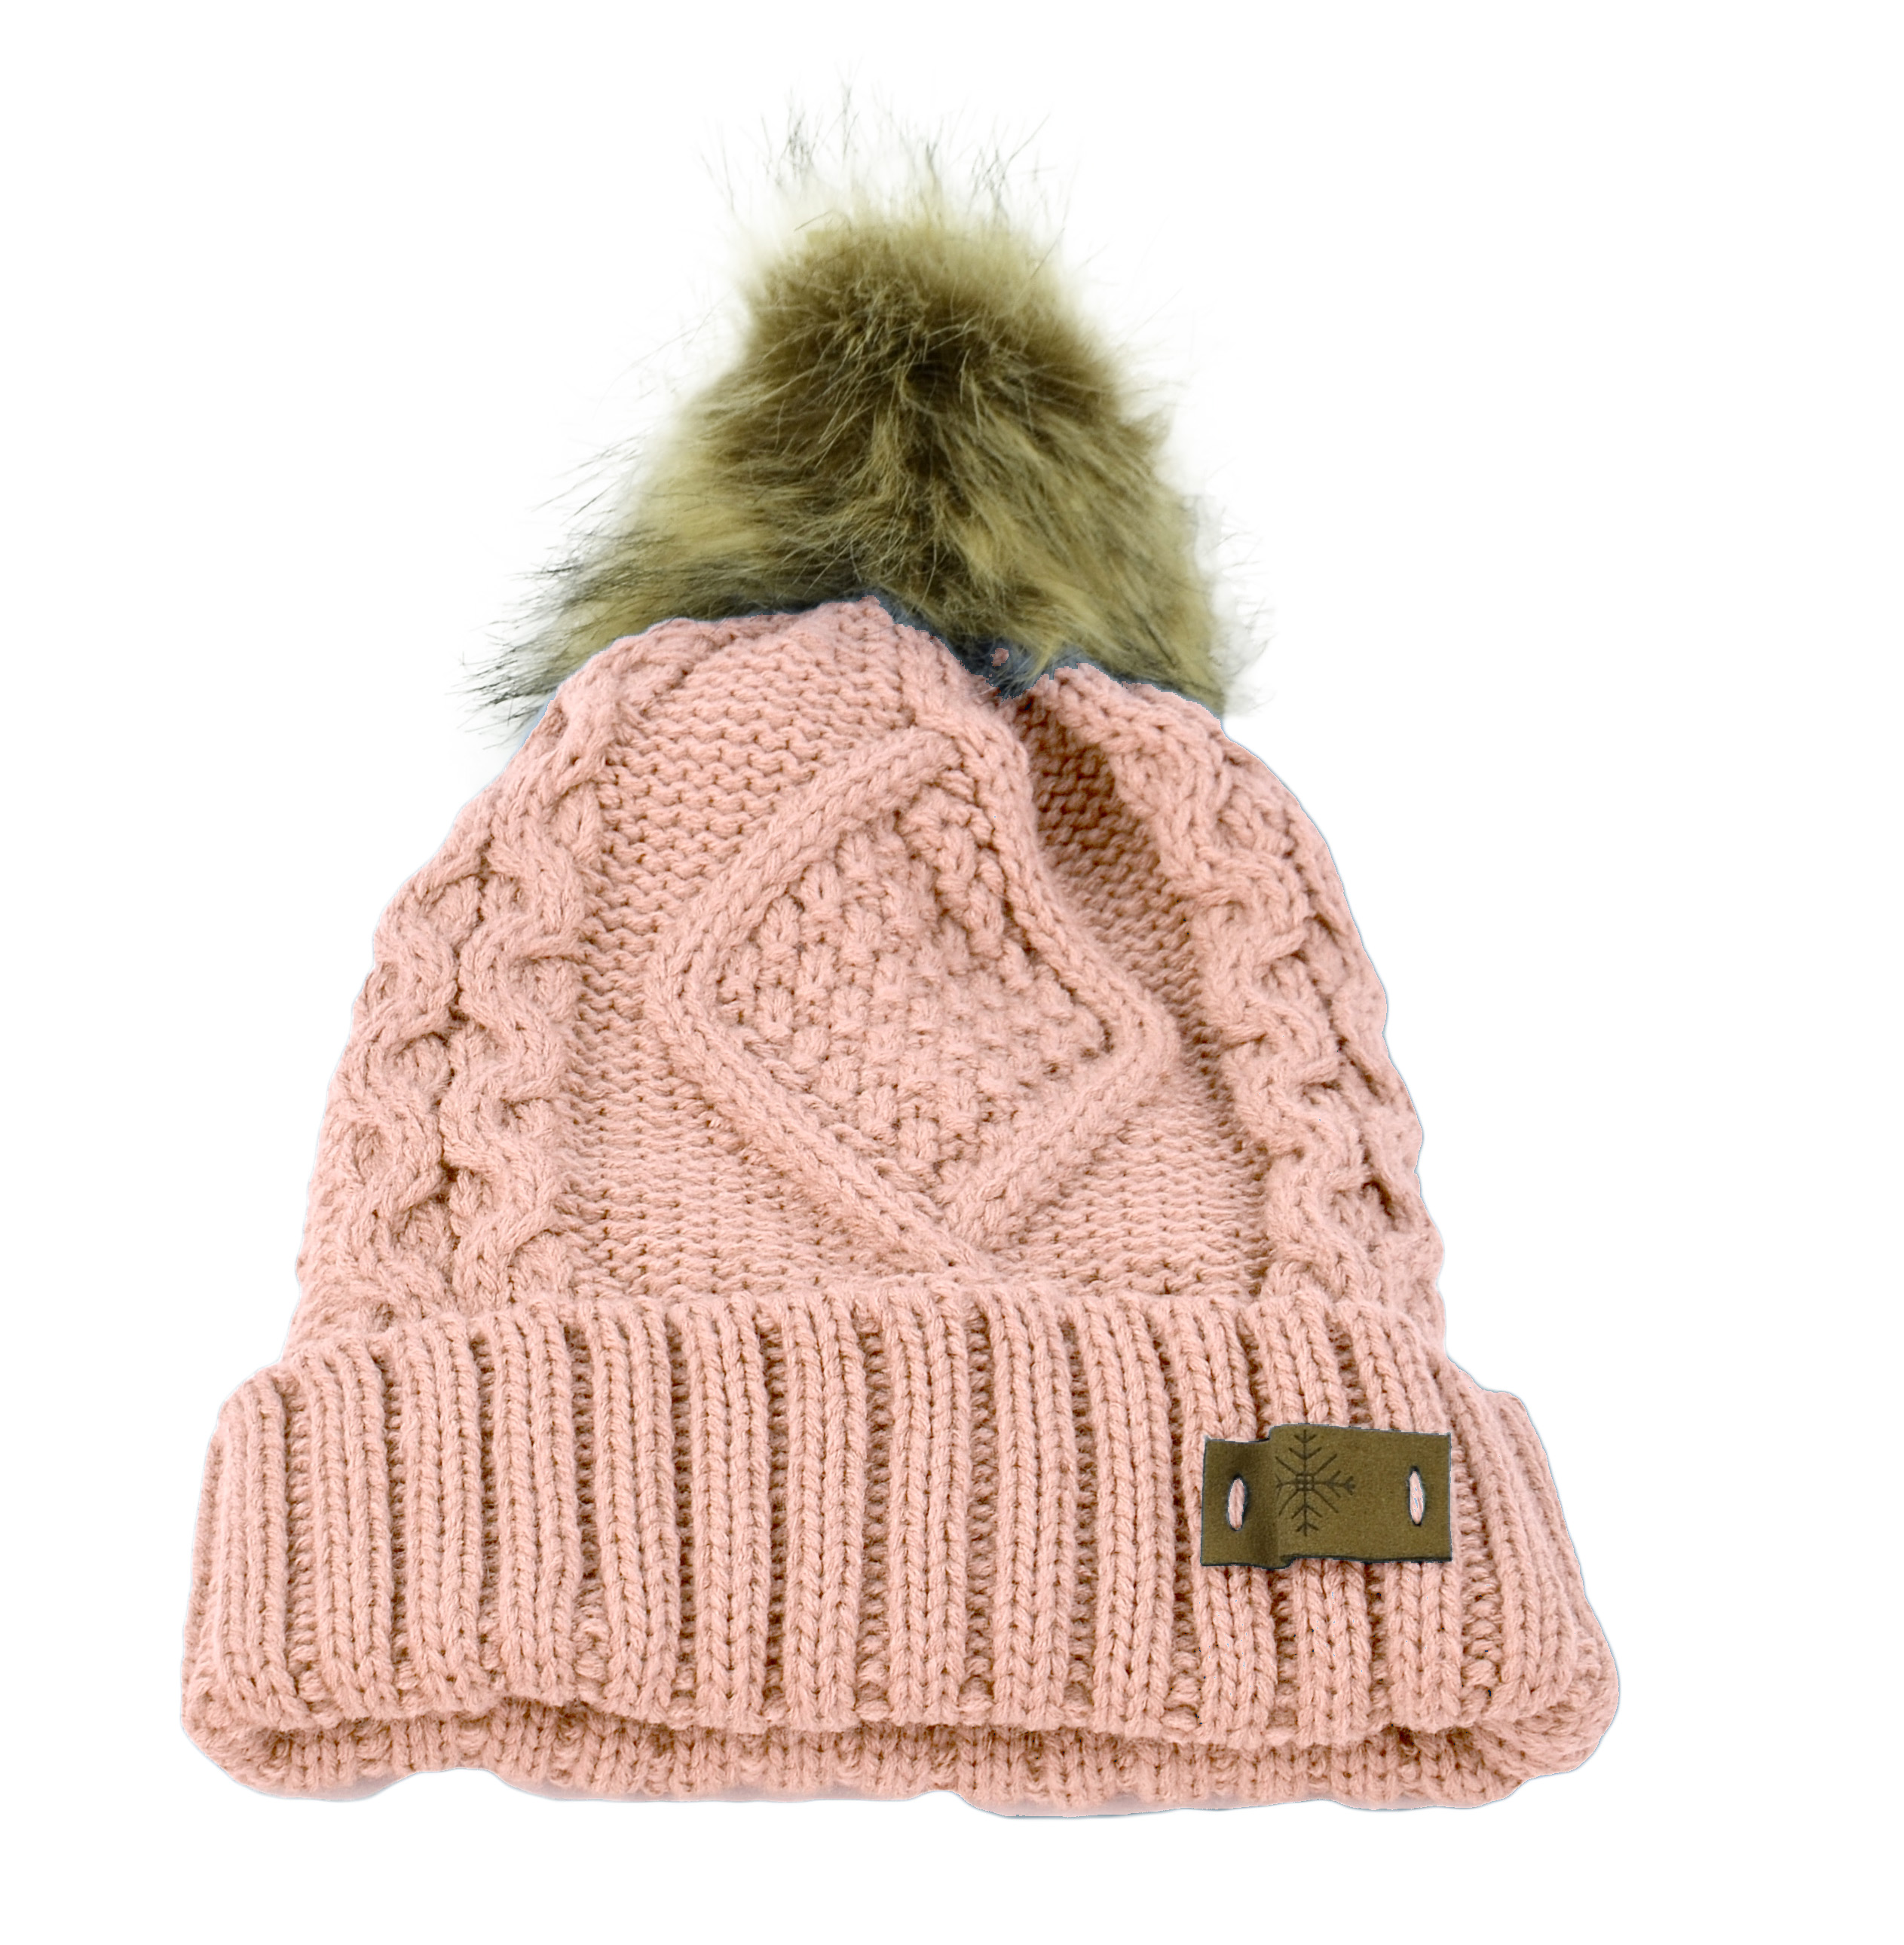 Belle Donne - Women's Winter Fleece Lined Cable Knitted Pom Pom Beanie Hat - INDI PINK